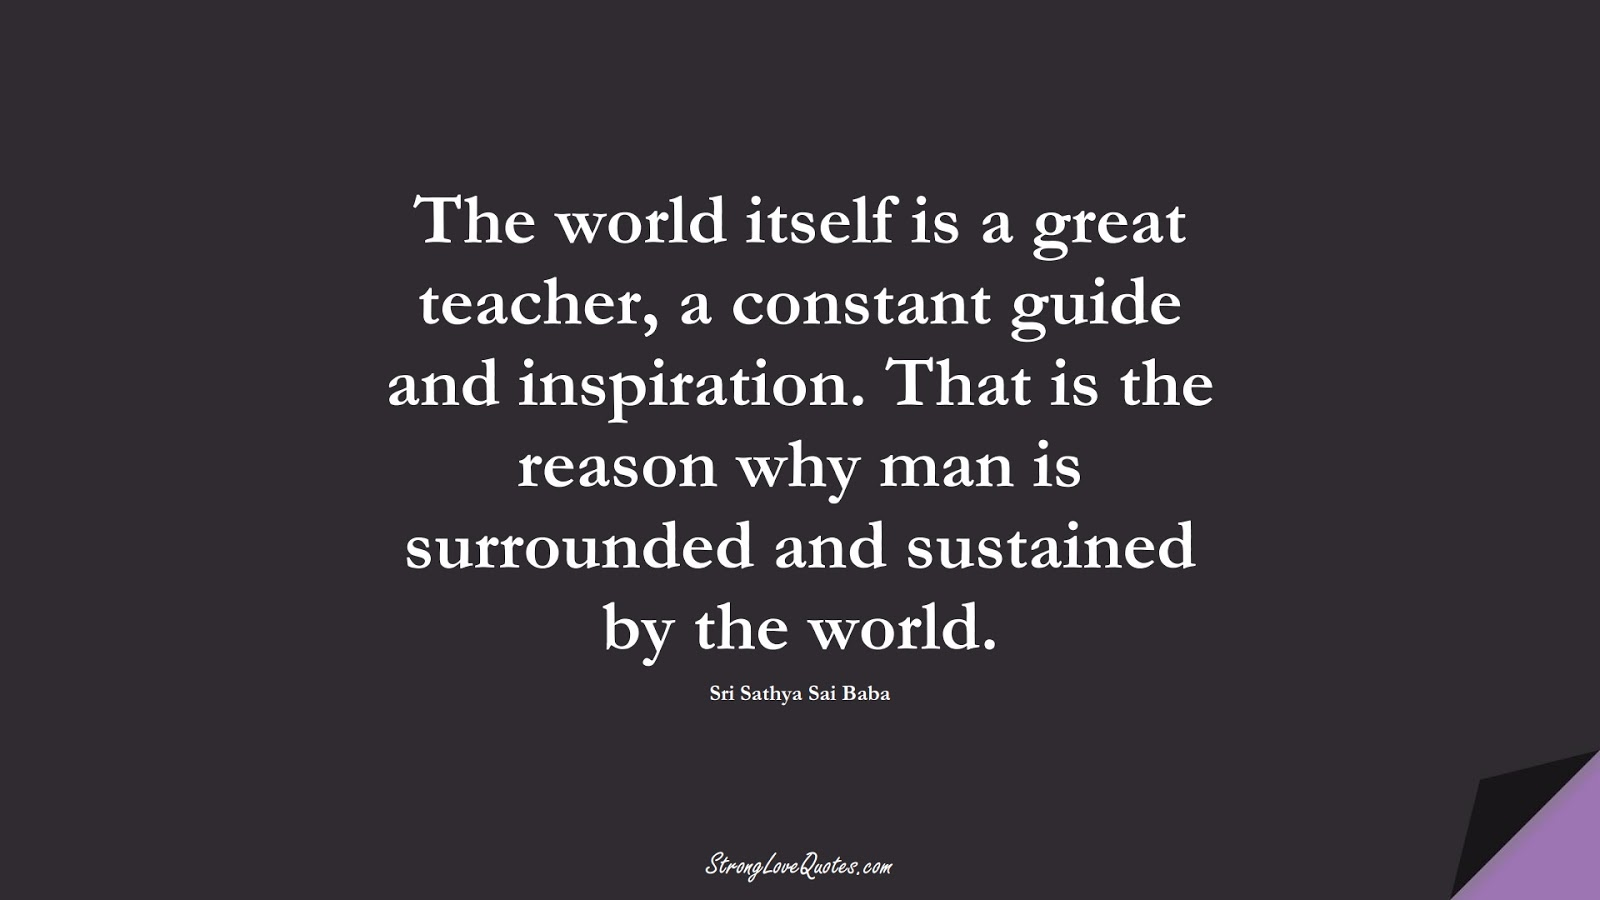 The world itself is a great teacher, a constant guide and inspiration. That is the reason why man is surrounded and sustained by the world. (Sri Sathya Sai Baba);  #EducationQuotes